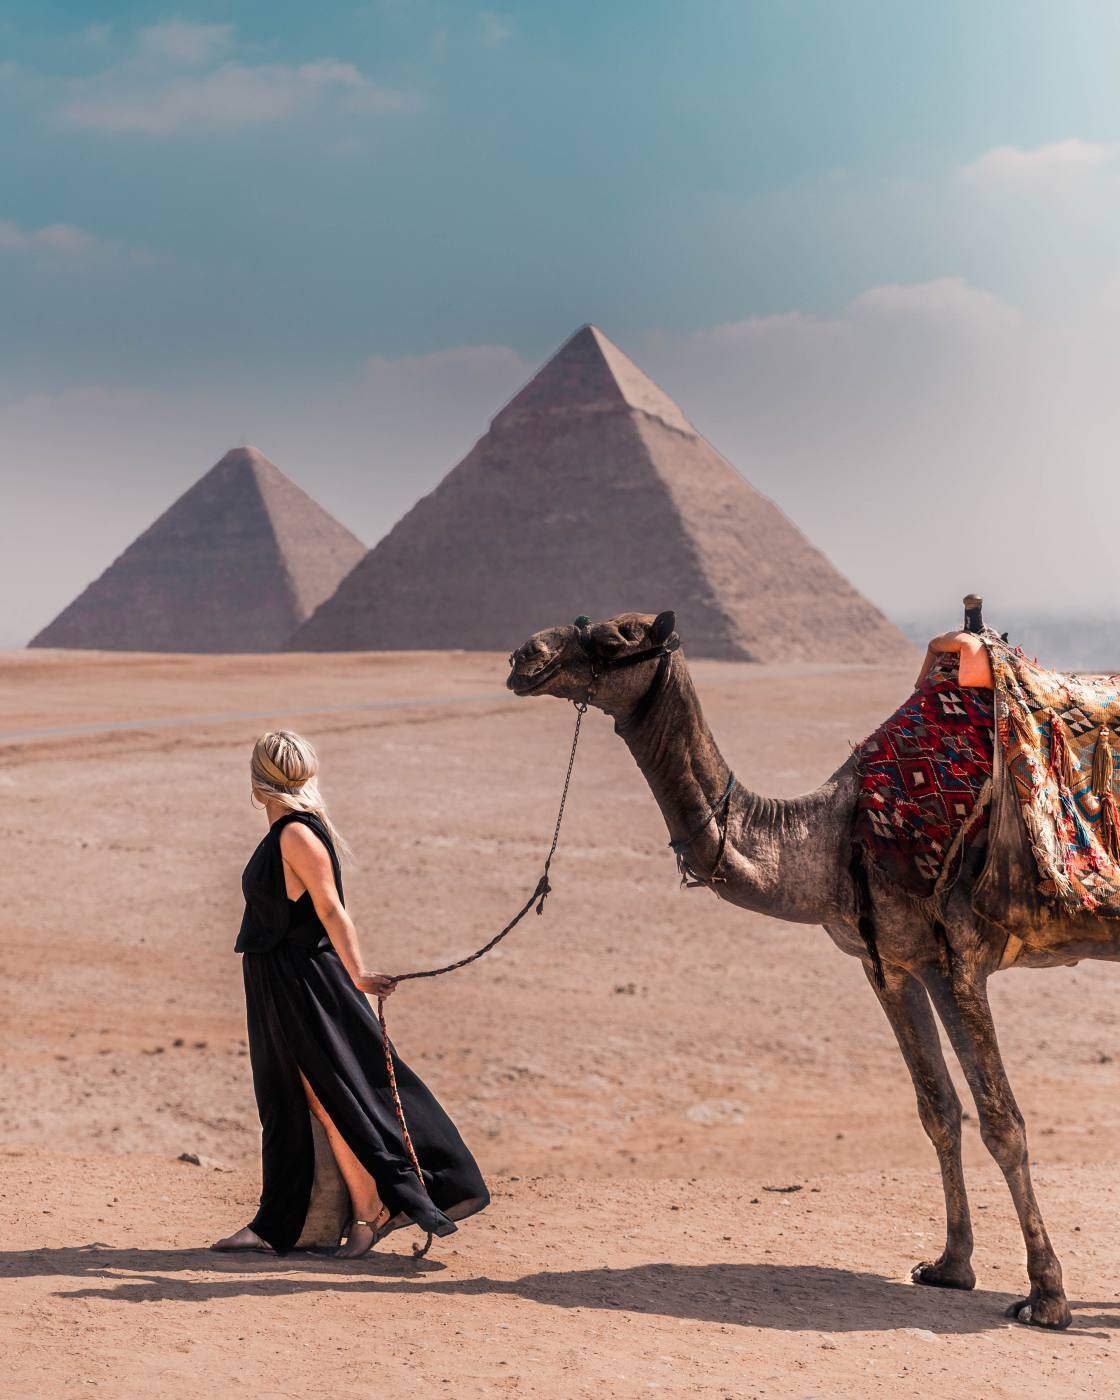 2 weeks in Egypts, photo with camel at the great pyramid